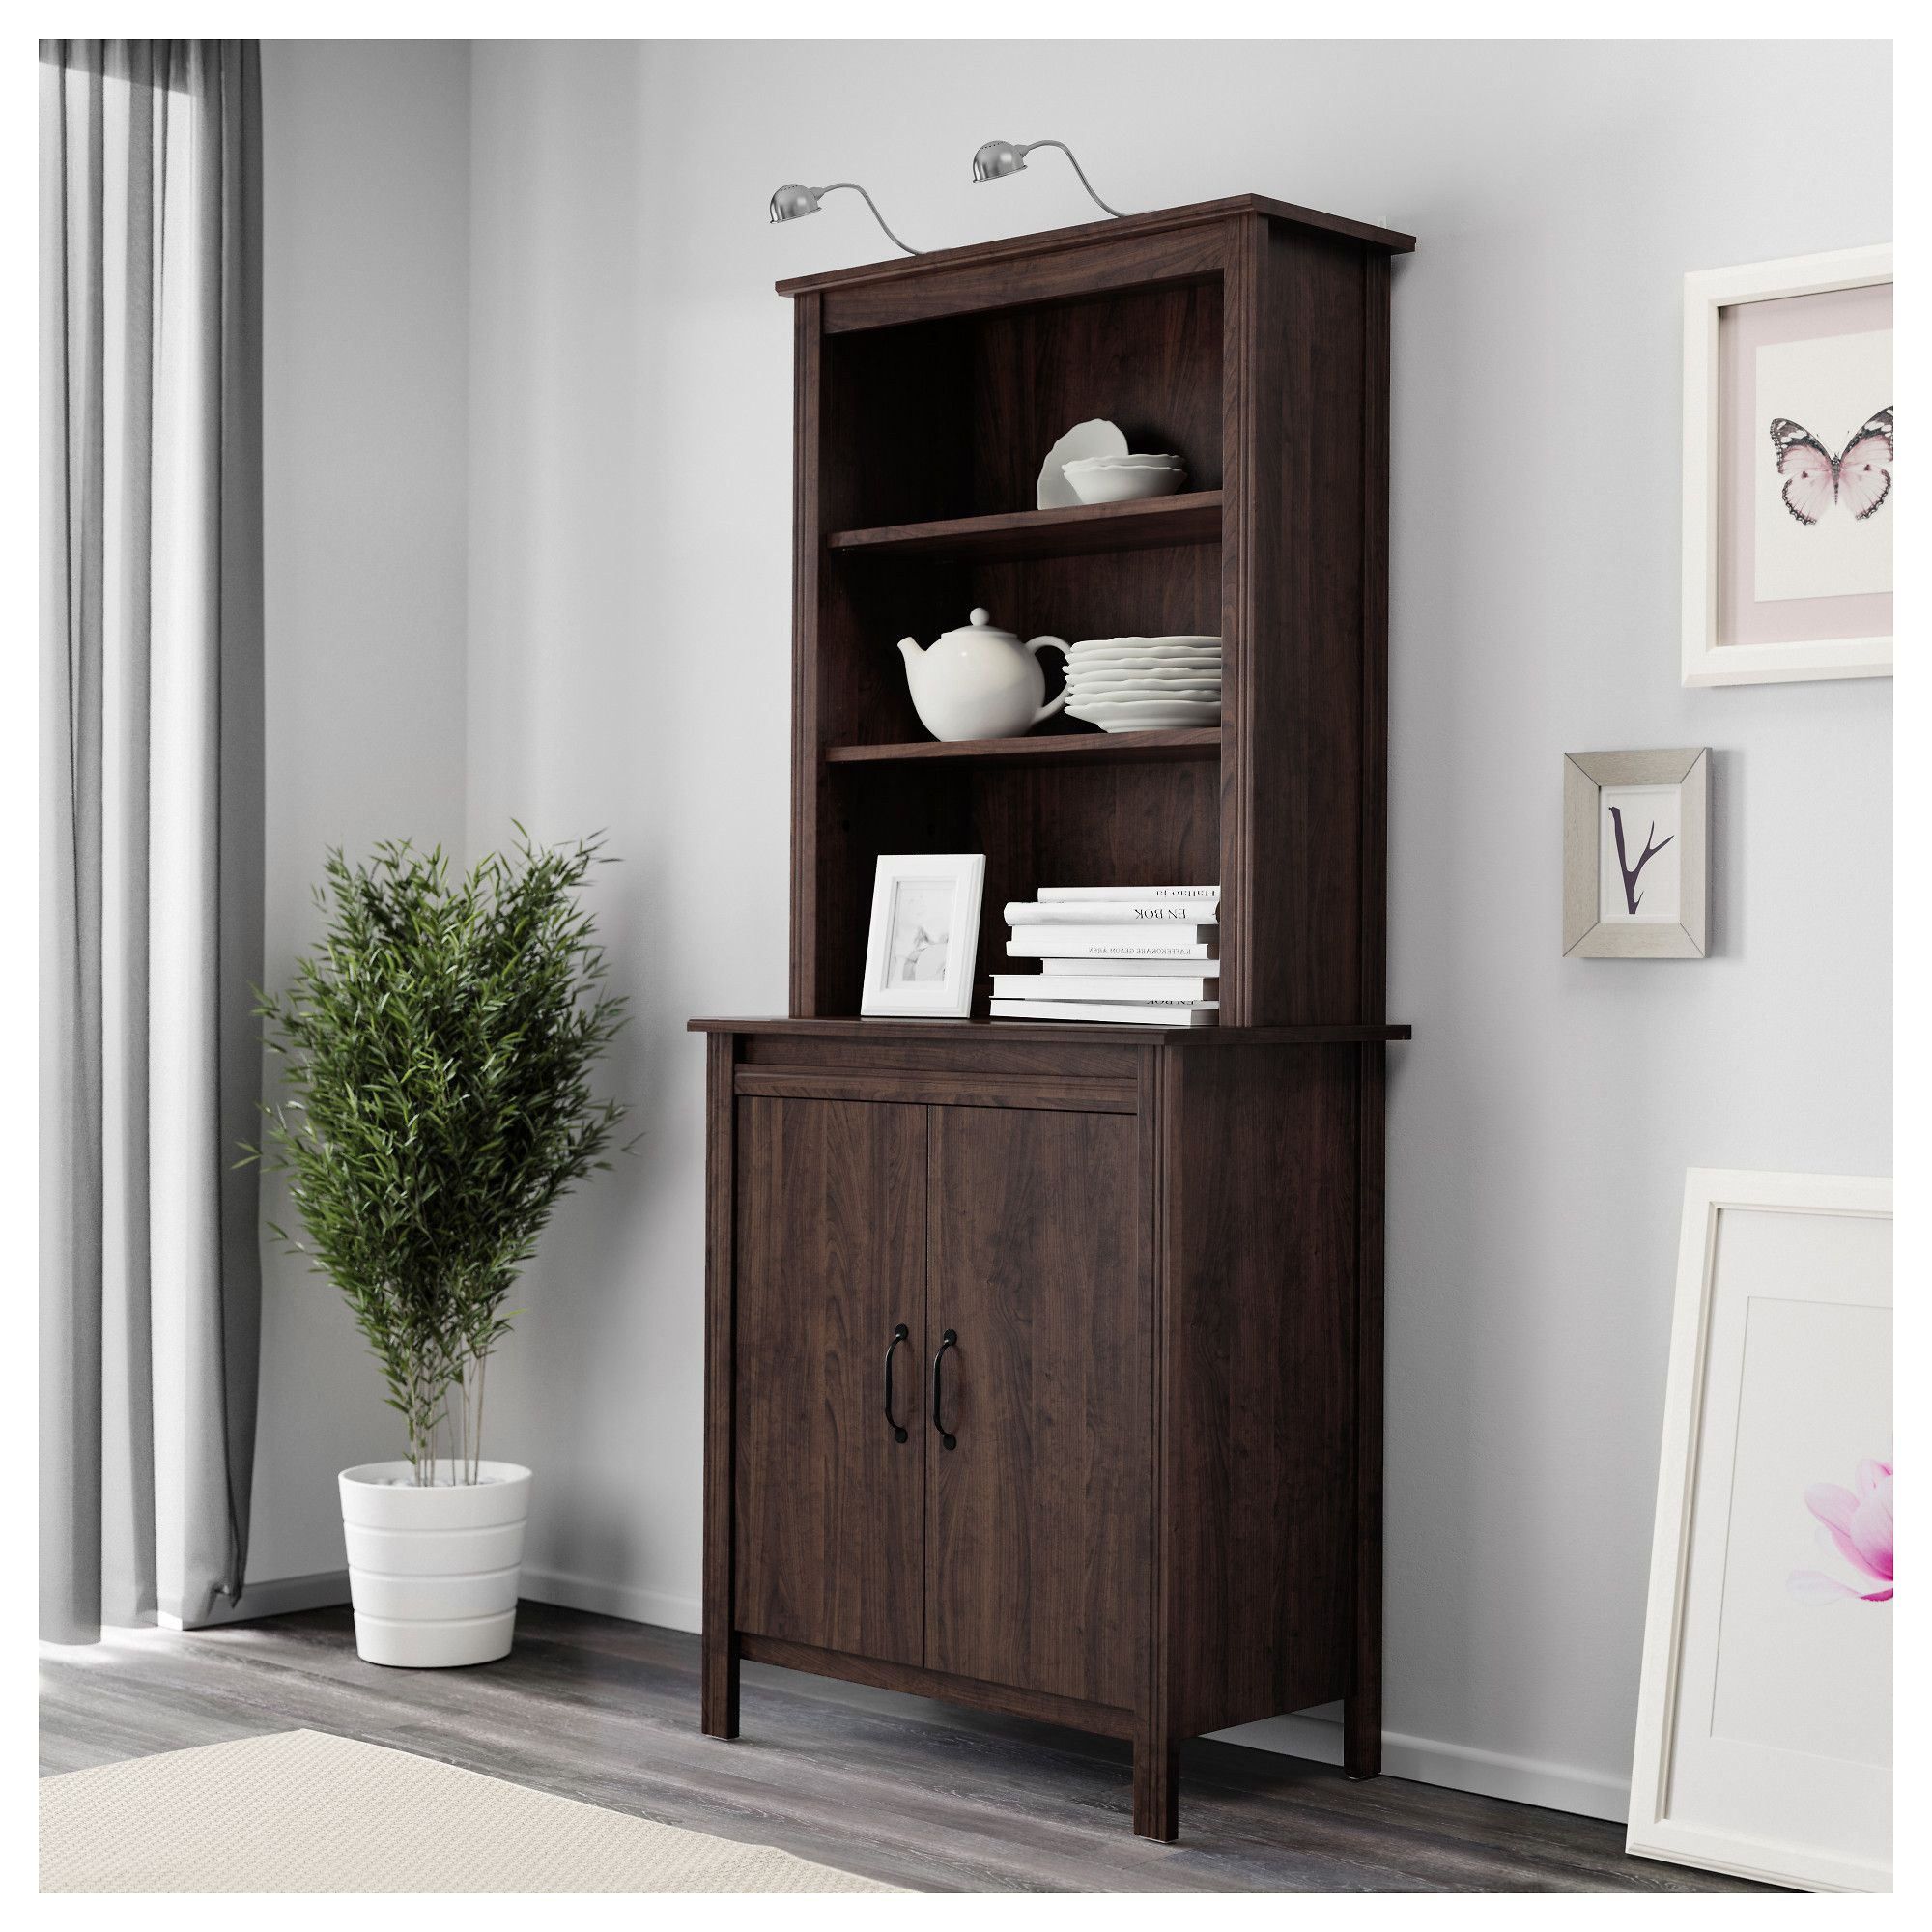 Ikea Brusali High Cabinet With Doors Brown Adjule Shelves So You Can Customize Your Storage As Needed